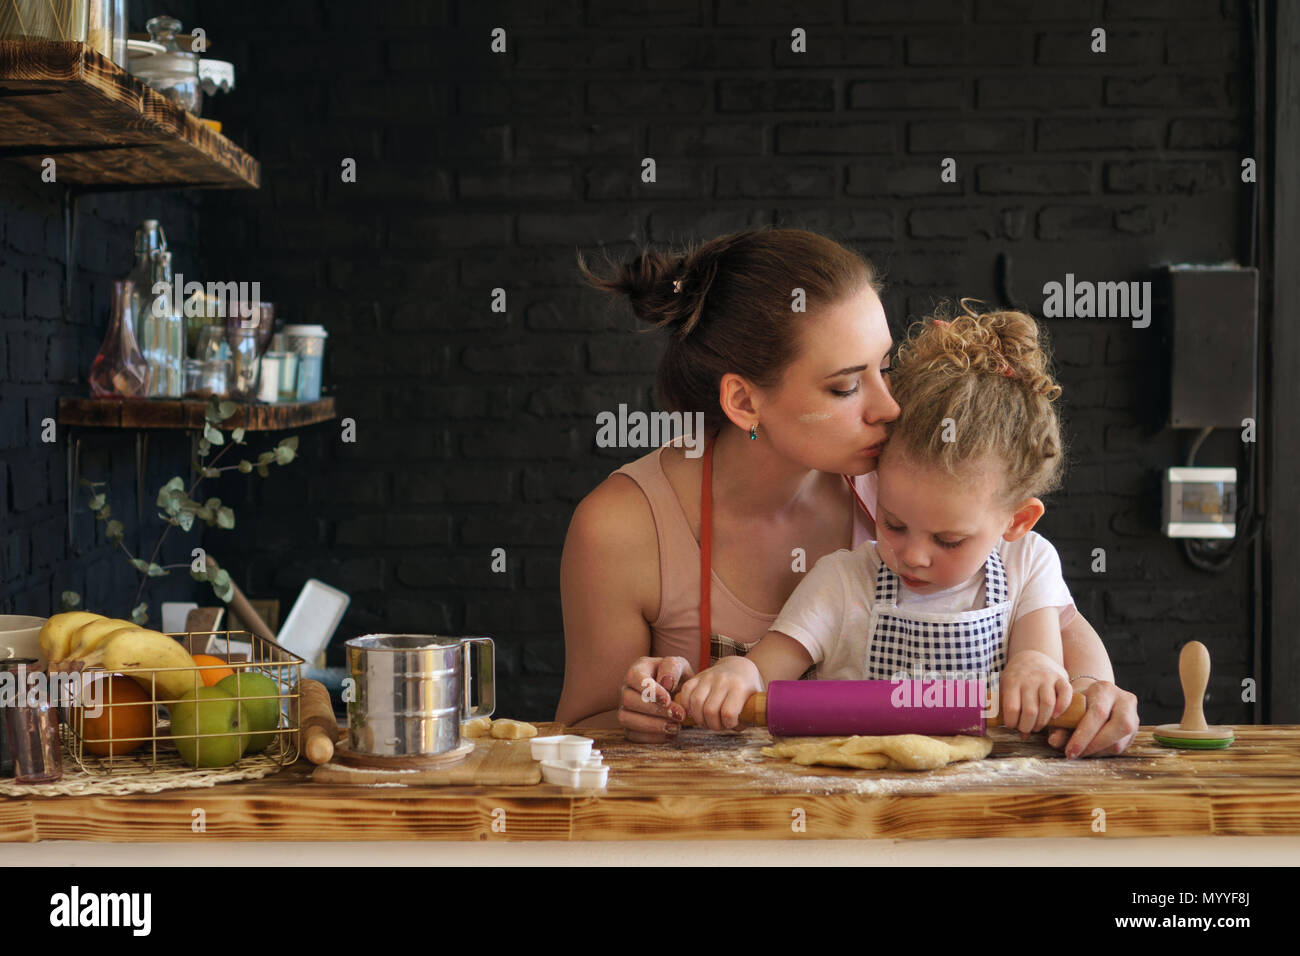 Young mother and daughter prepare cookies in kitchen. They are in aprons. Little girl rolls dough with rolling pin. Mother kisses child, encouraging - Stock Image